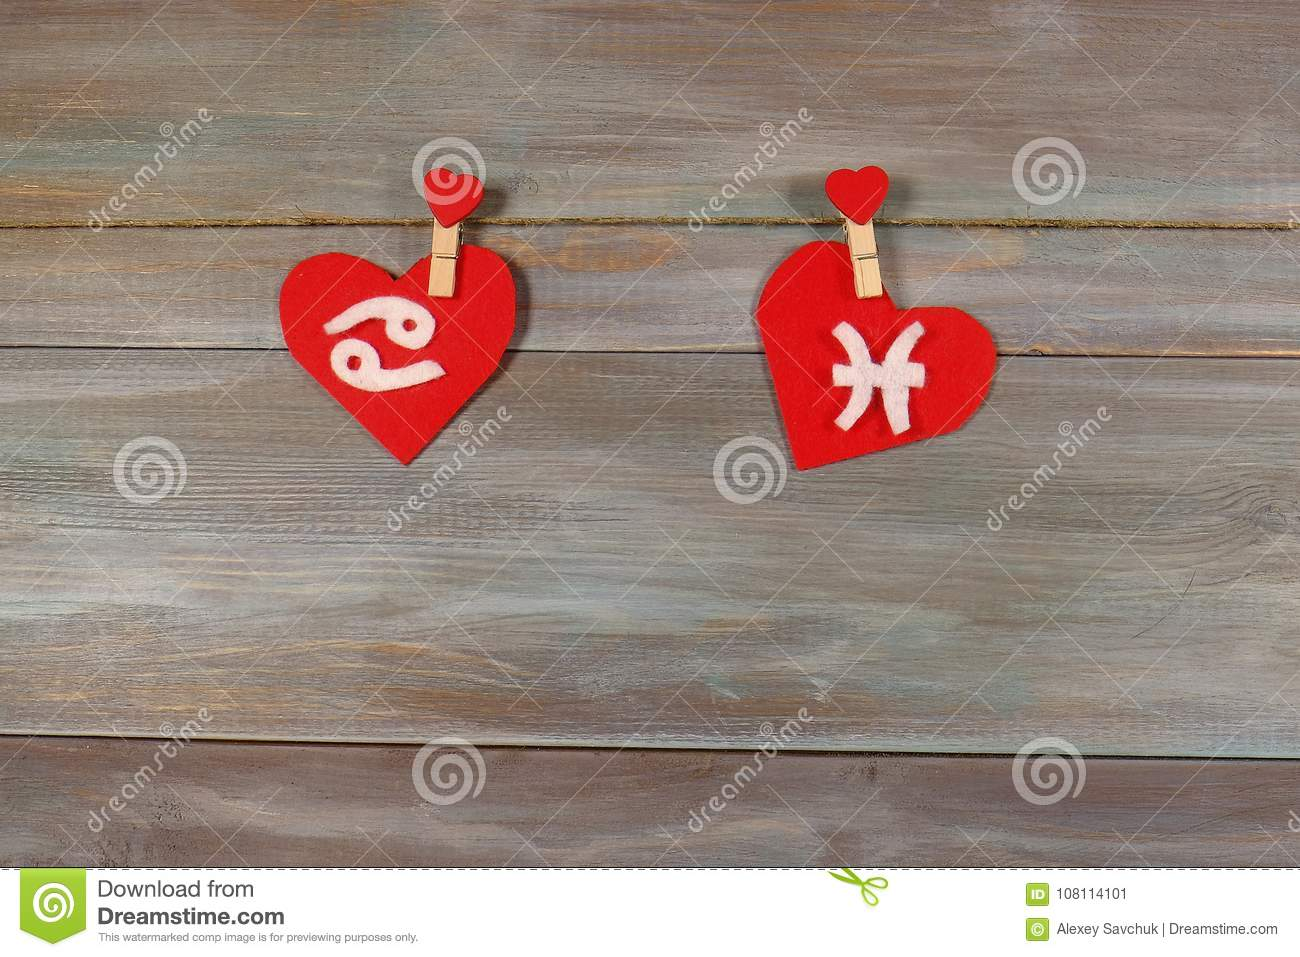 Cancer and fish. signs of the zodiac and heart. wooden backgroun